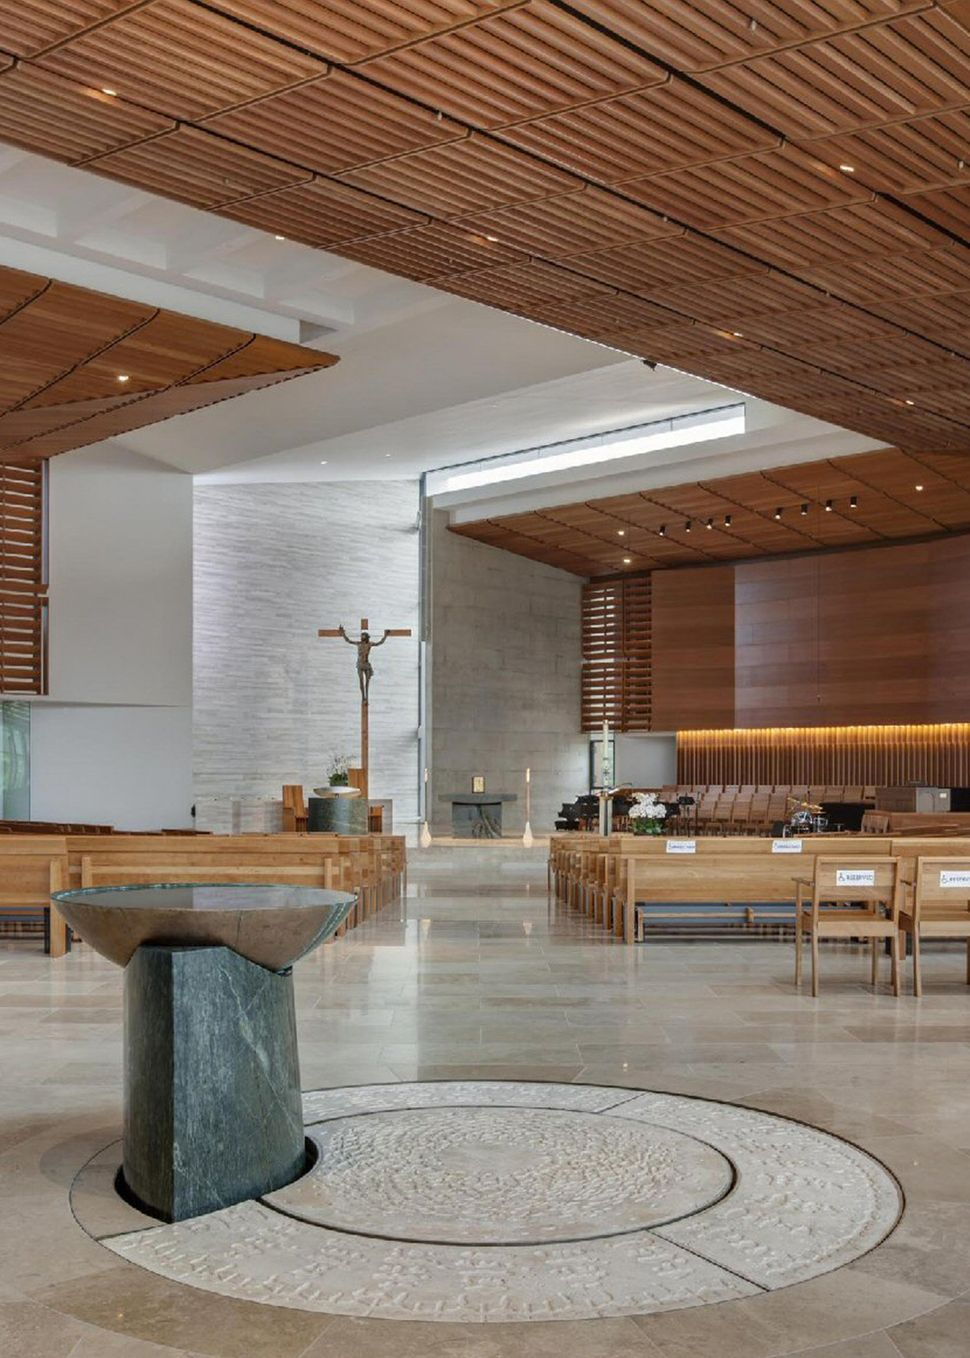 Dekker / Perich / Sabatini; Baptismal Font; St. Thomas More Catholic Church; Oceanside, California; Liturgical Furnishings